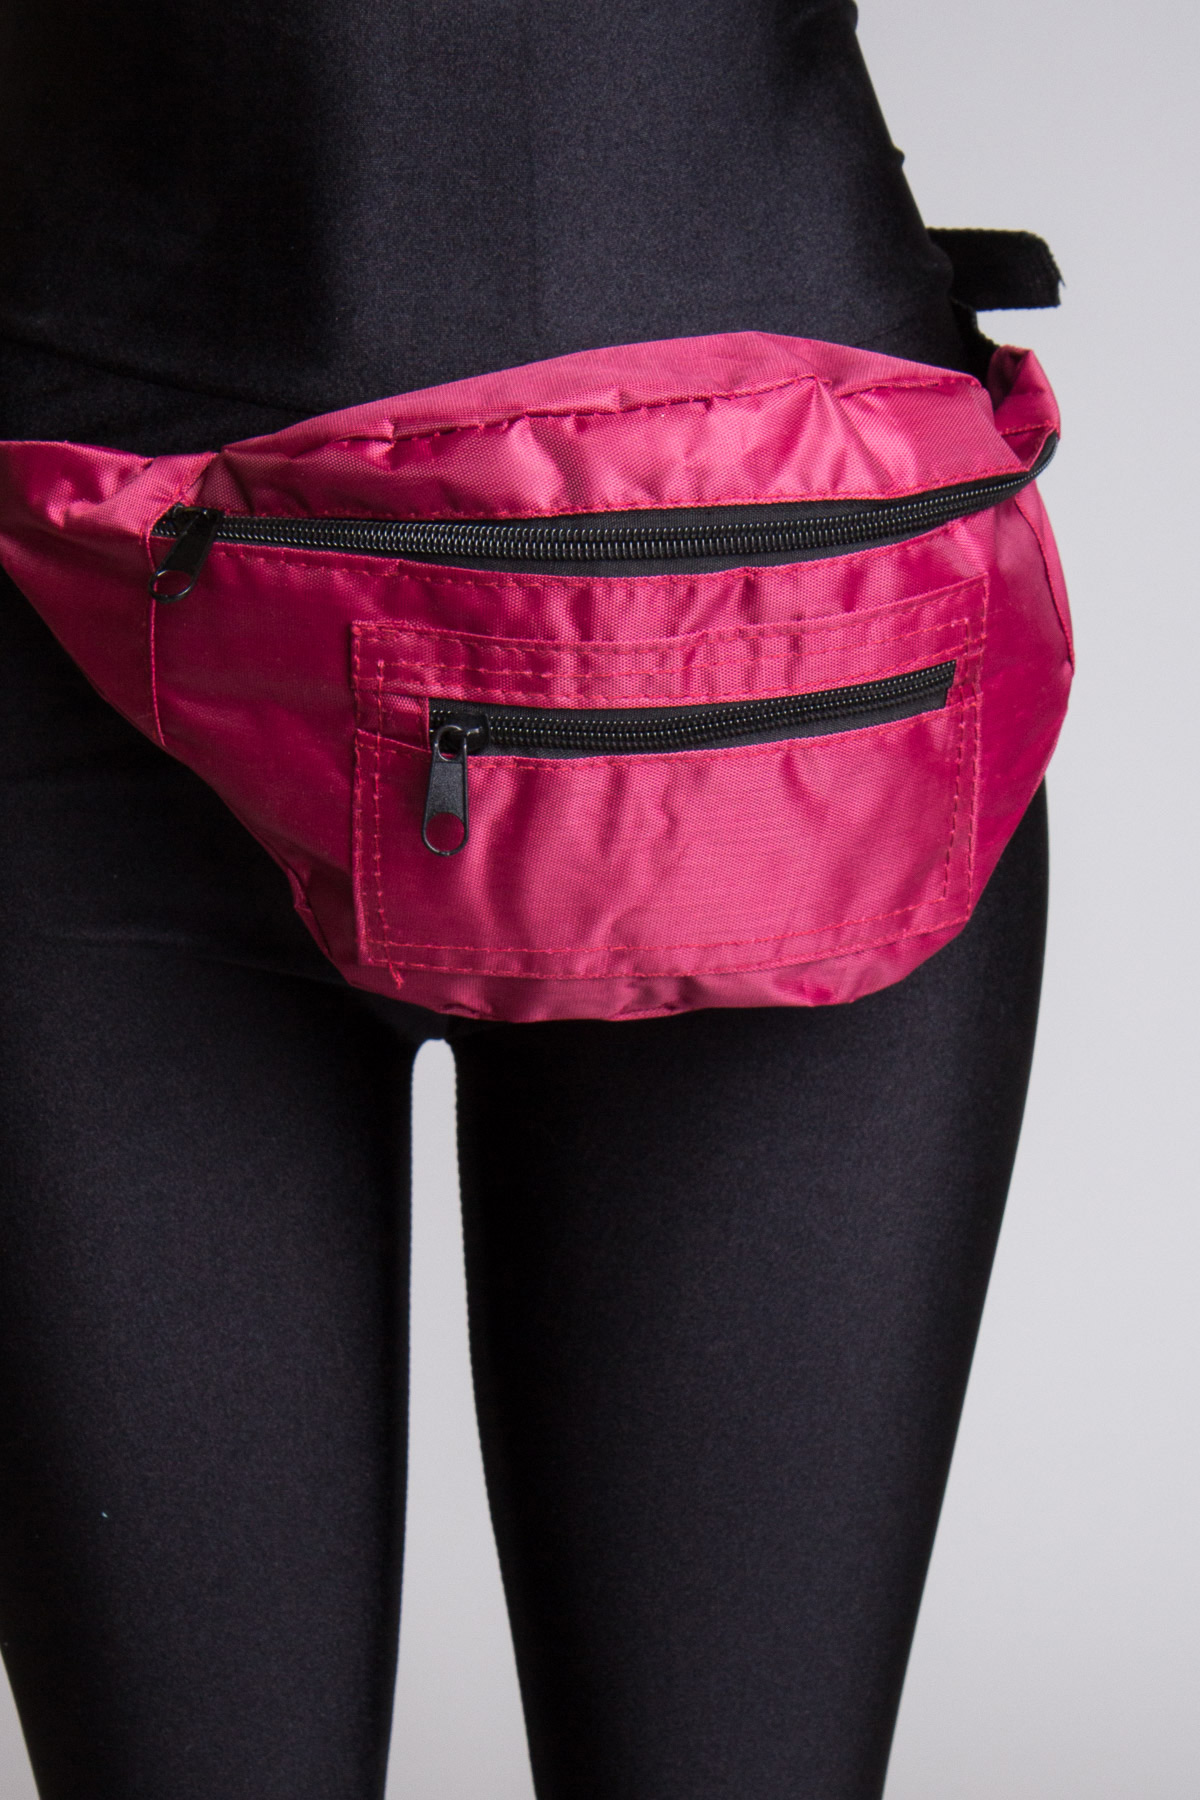 Burgundy Solid Fanny Pack